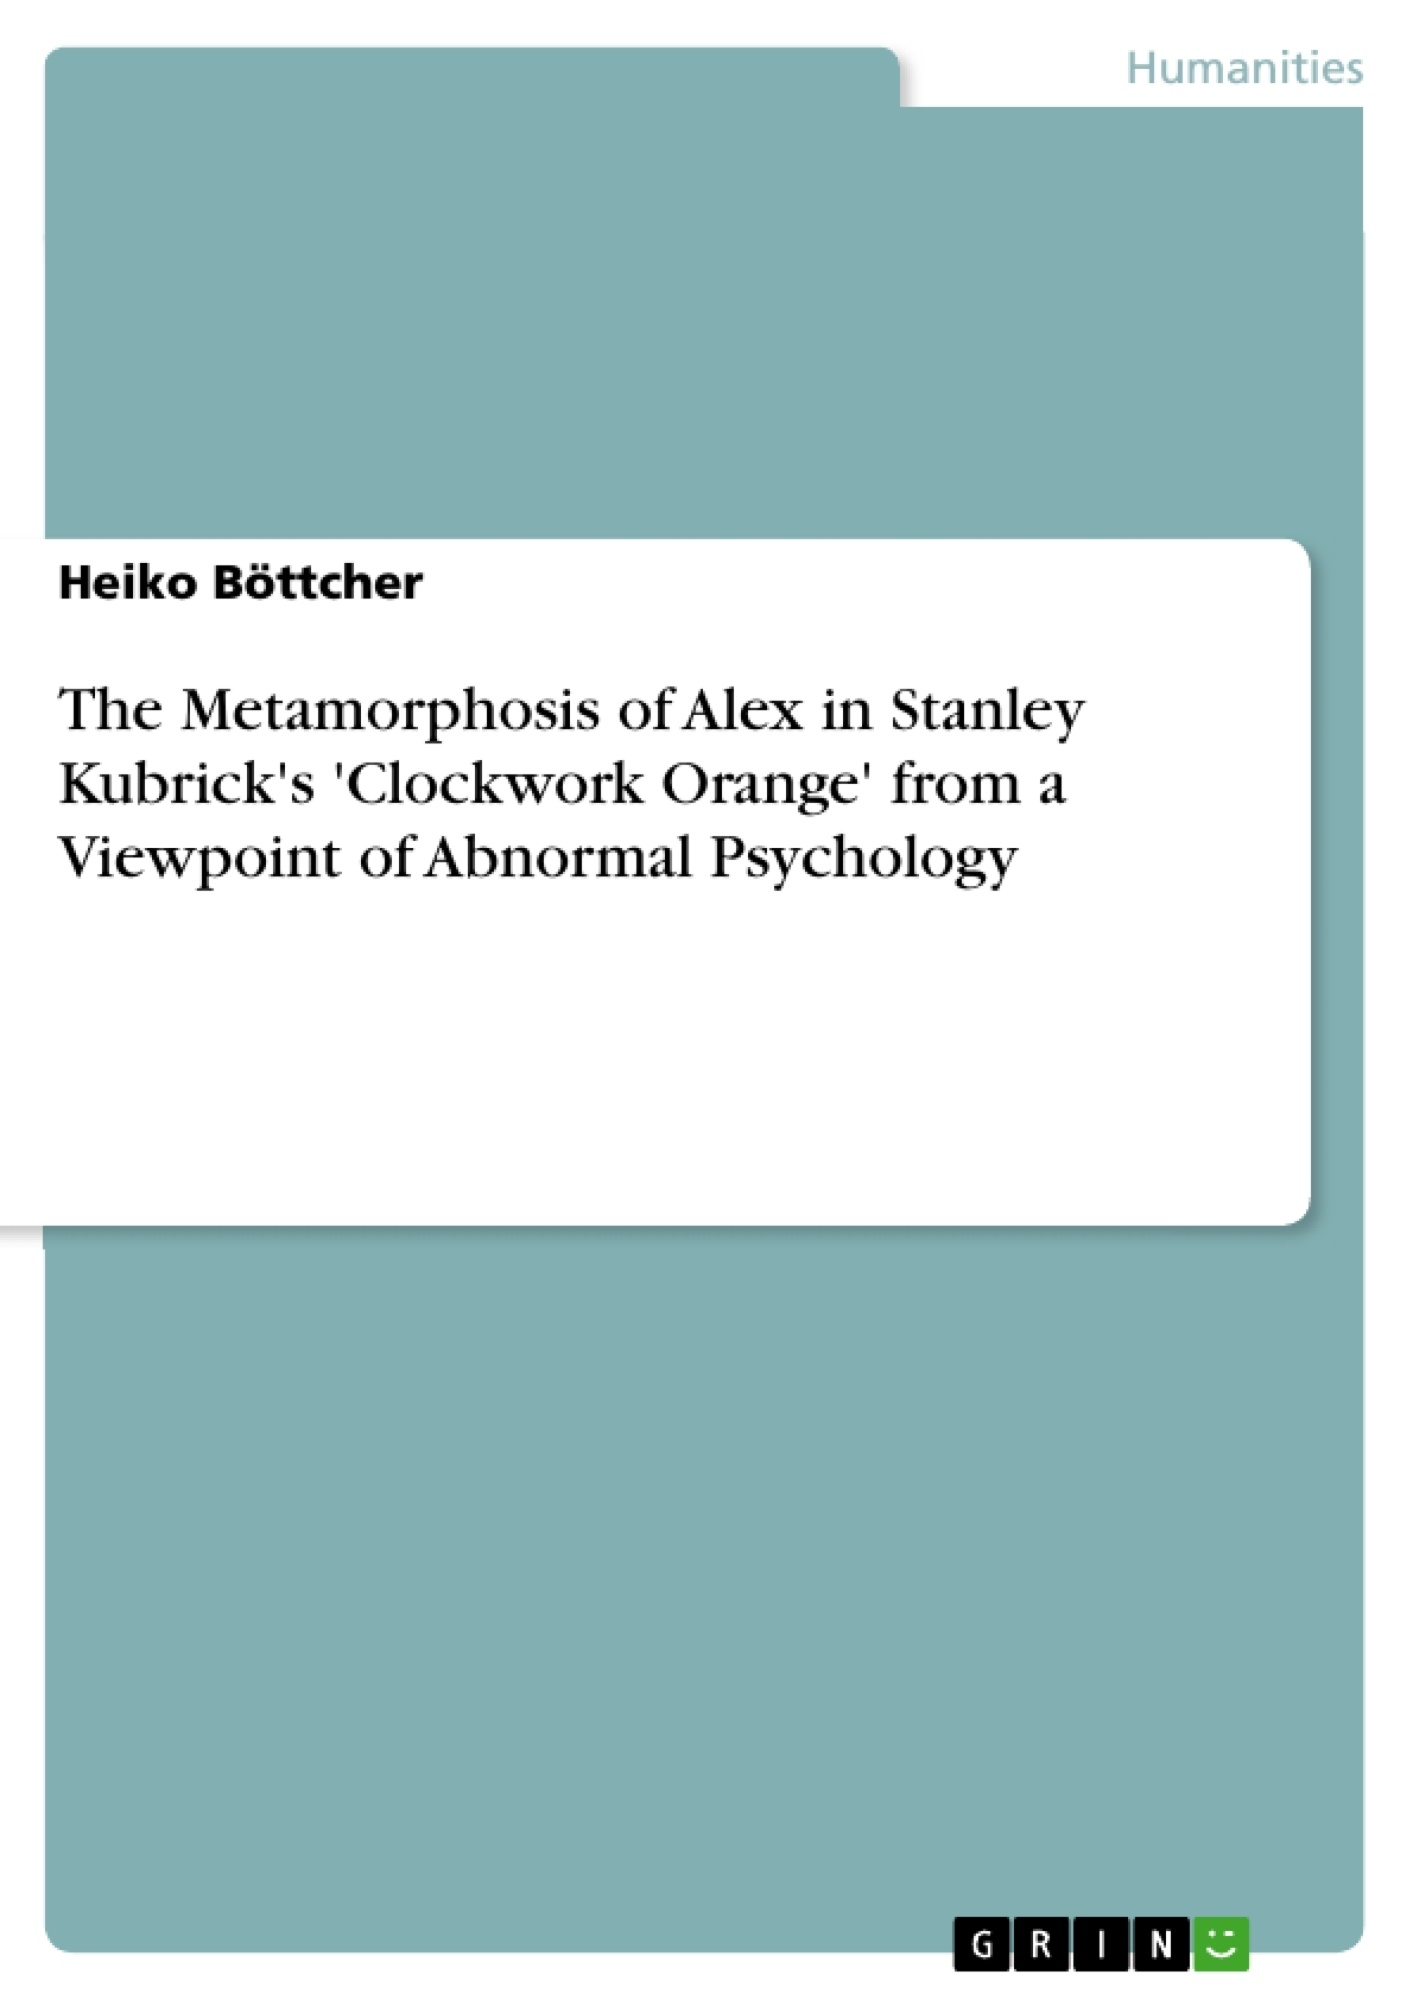 the metamorphosis of alex in stanley kubrick s clockwork orange upload your own papers earn money and win an iphone 7